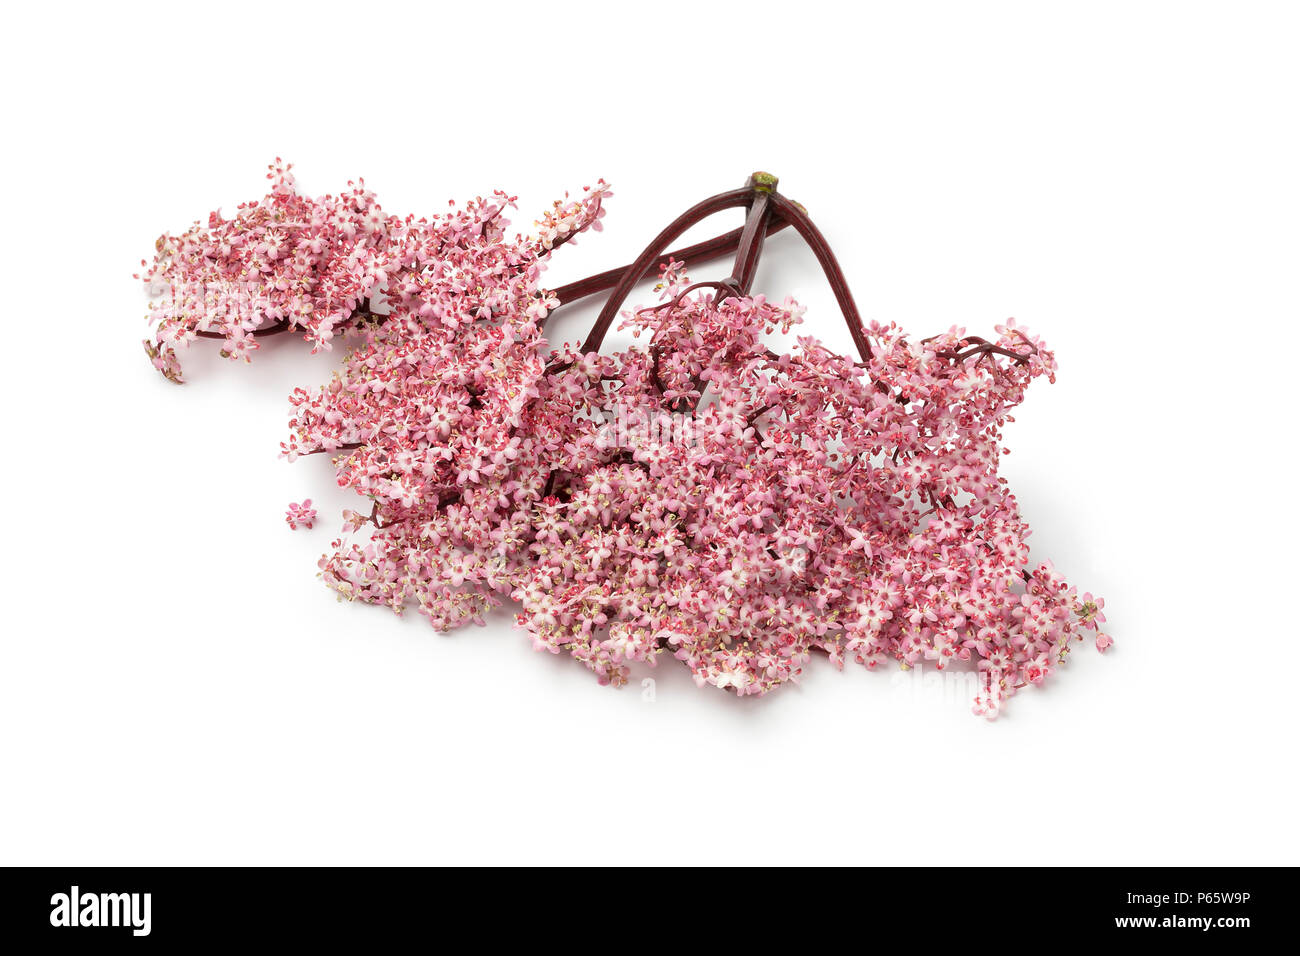 Twig of pink elderberry blossom isolated on white background - Stock Image